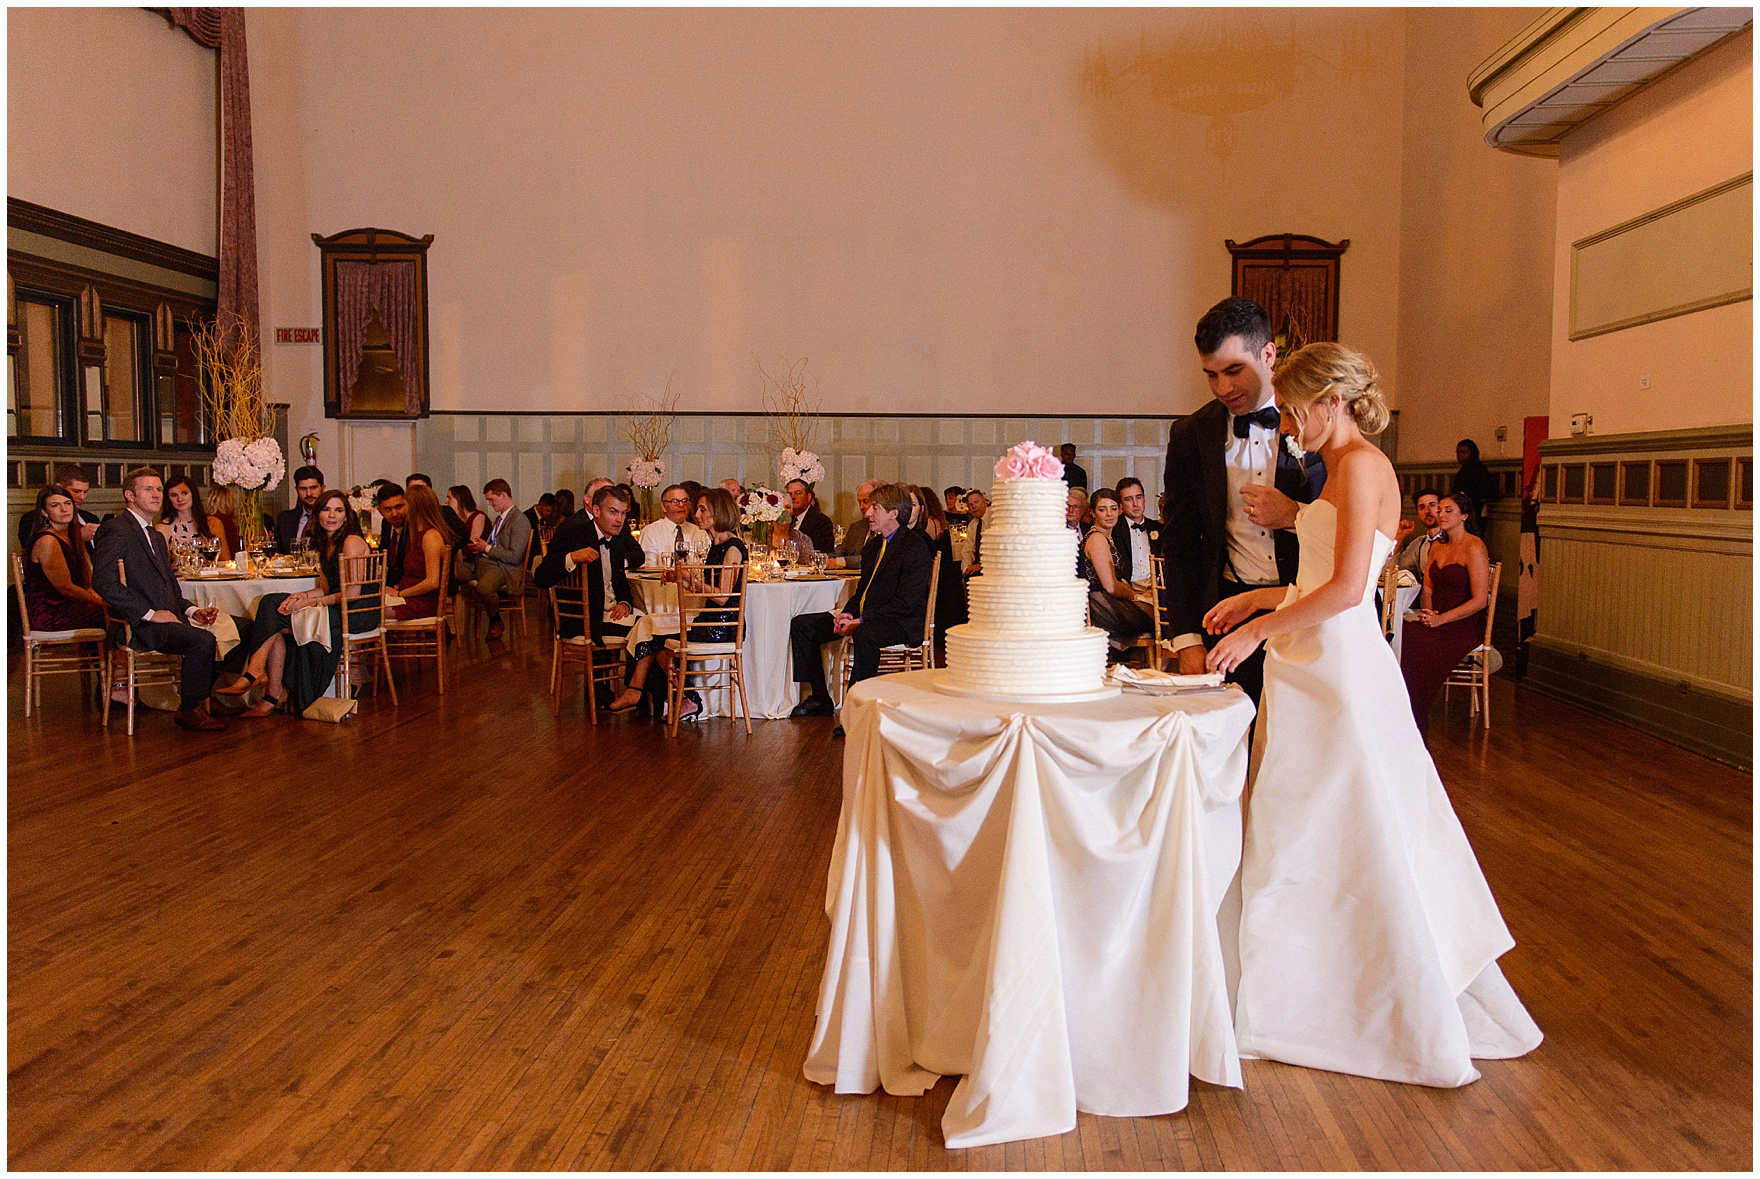 The bride and groom cut their cake during a St. Clement Germania Place Chicago wedding.